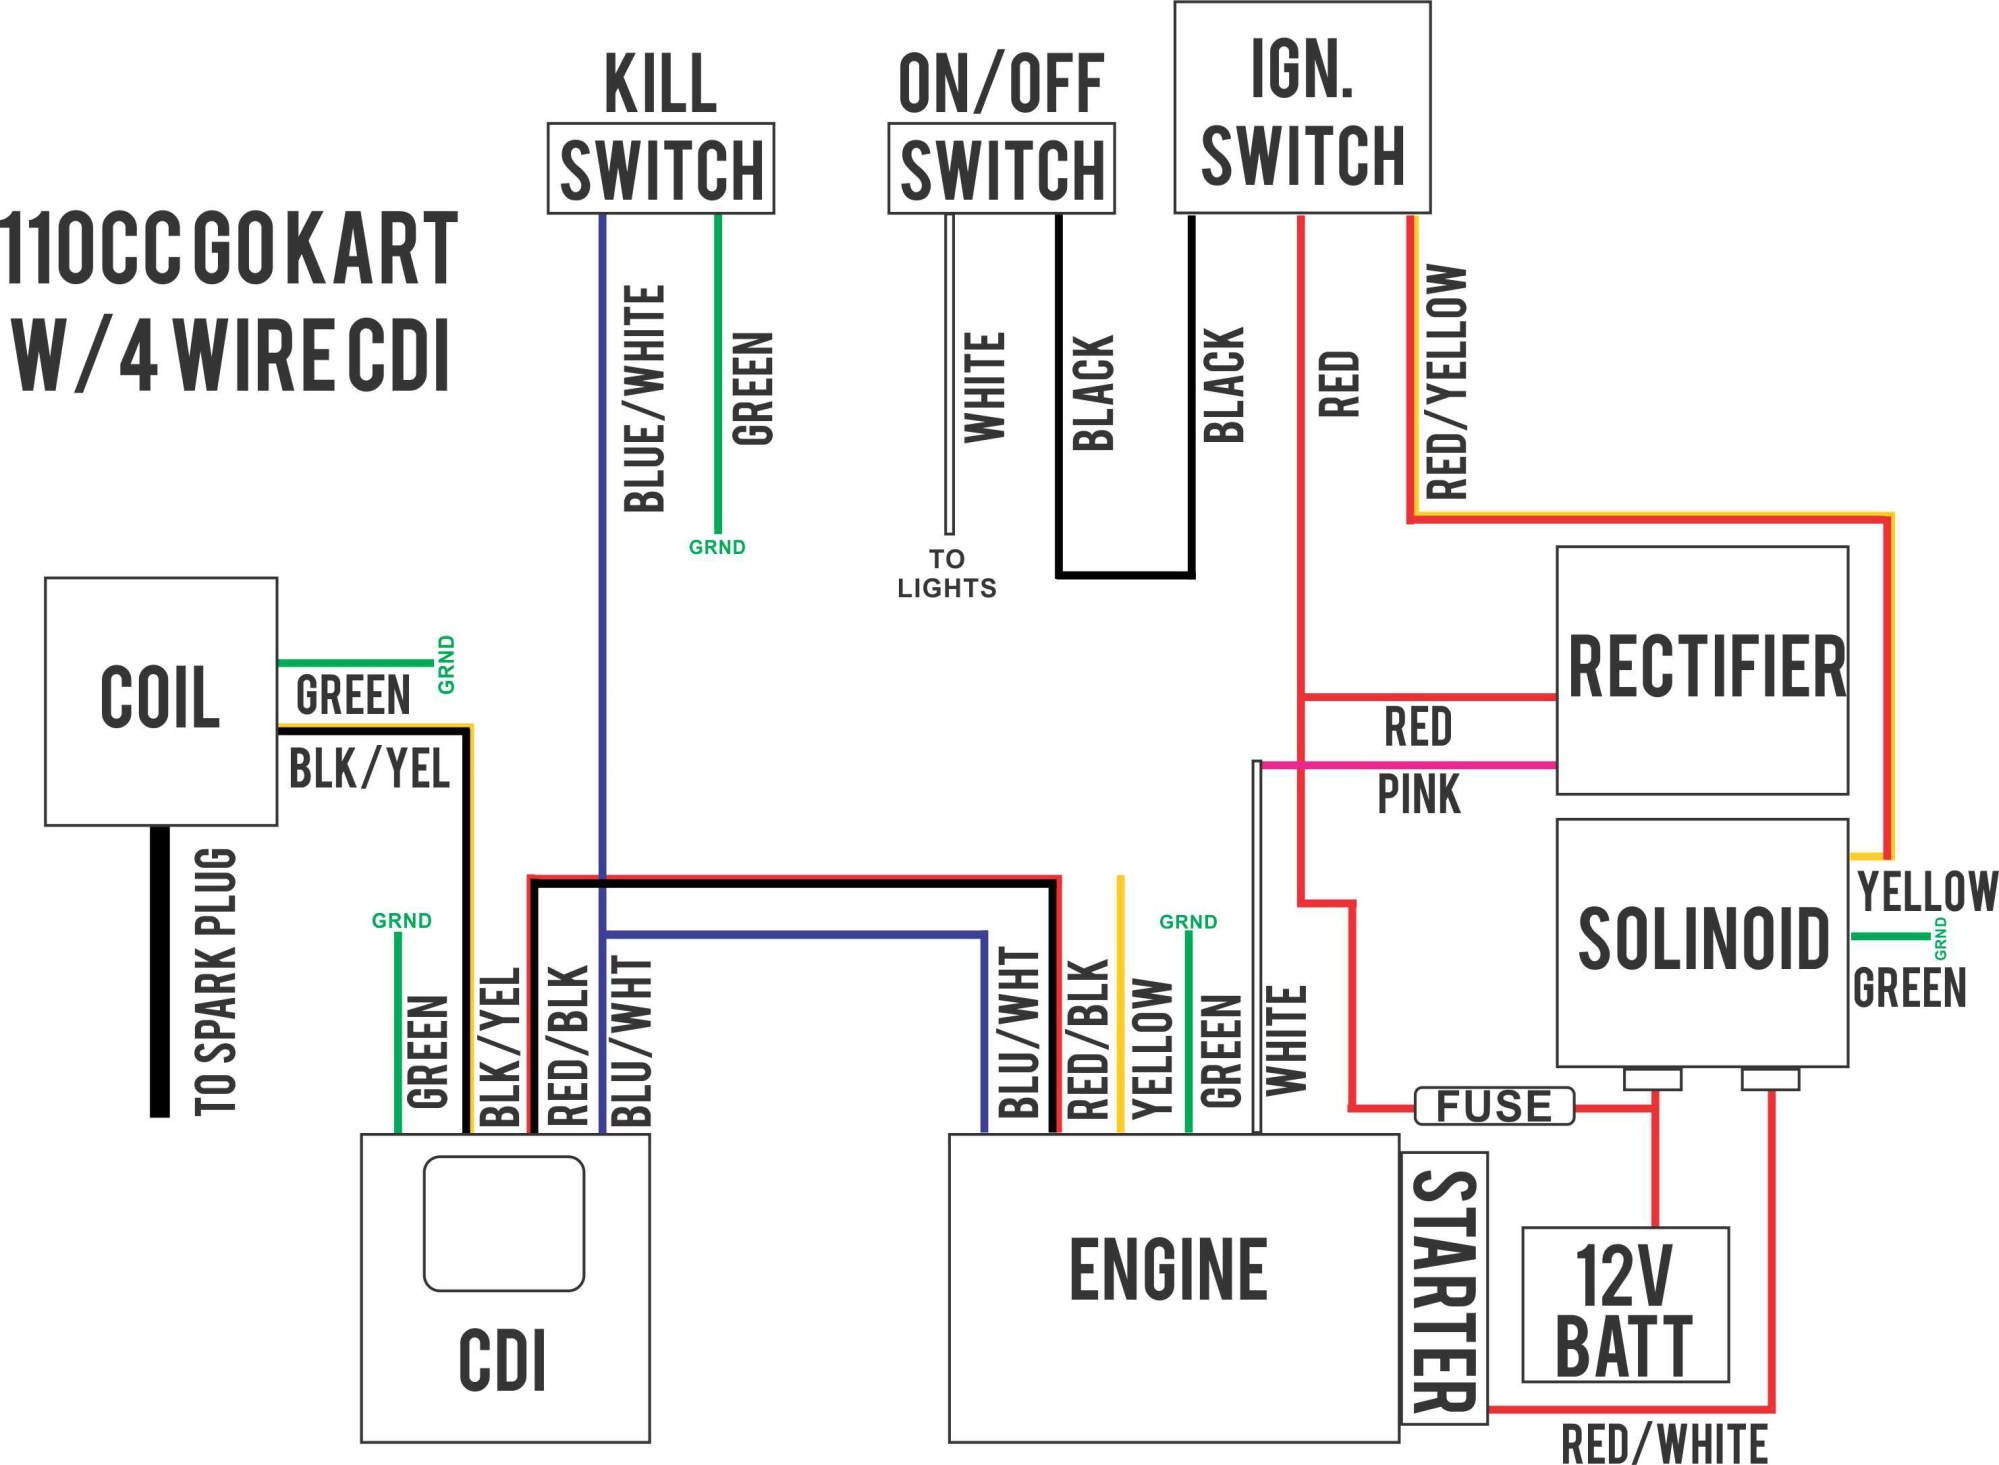 hight resolution of atv switch wiring wiring diagram mega chinese atv remote kill switch wiring atv kill switch wiring